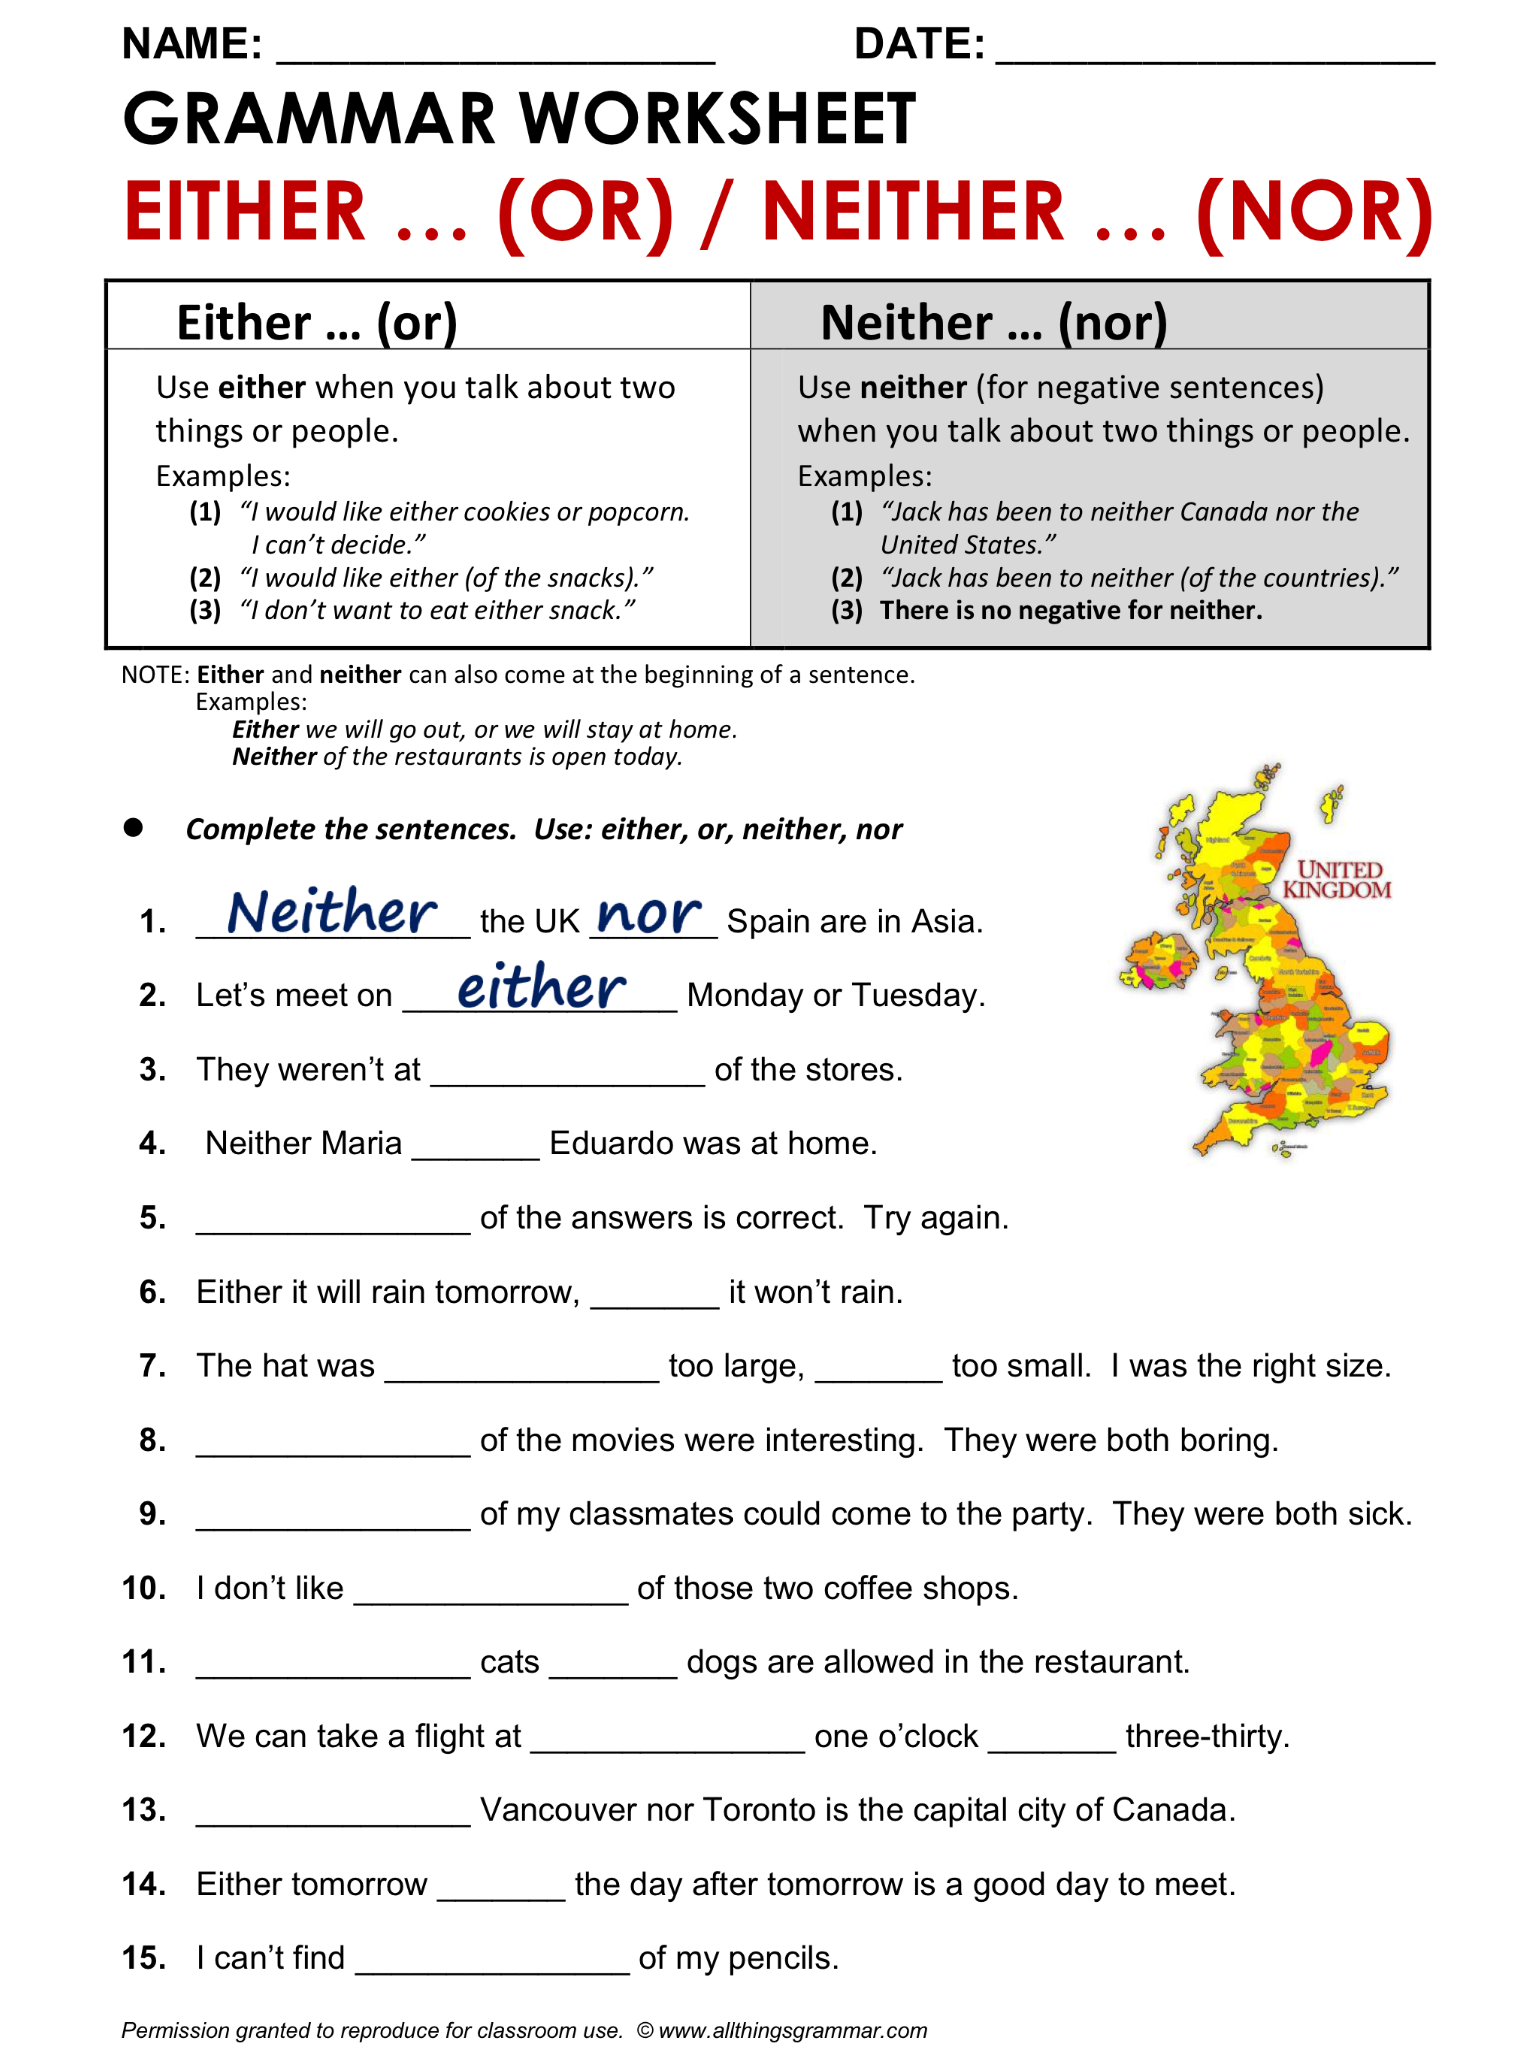 English Grammar Worksheet Either Or Neither